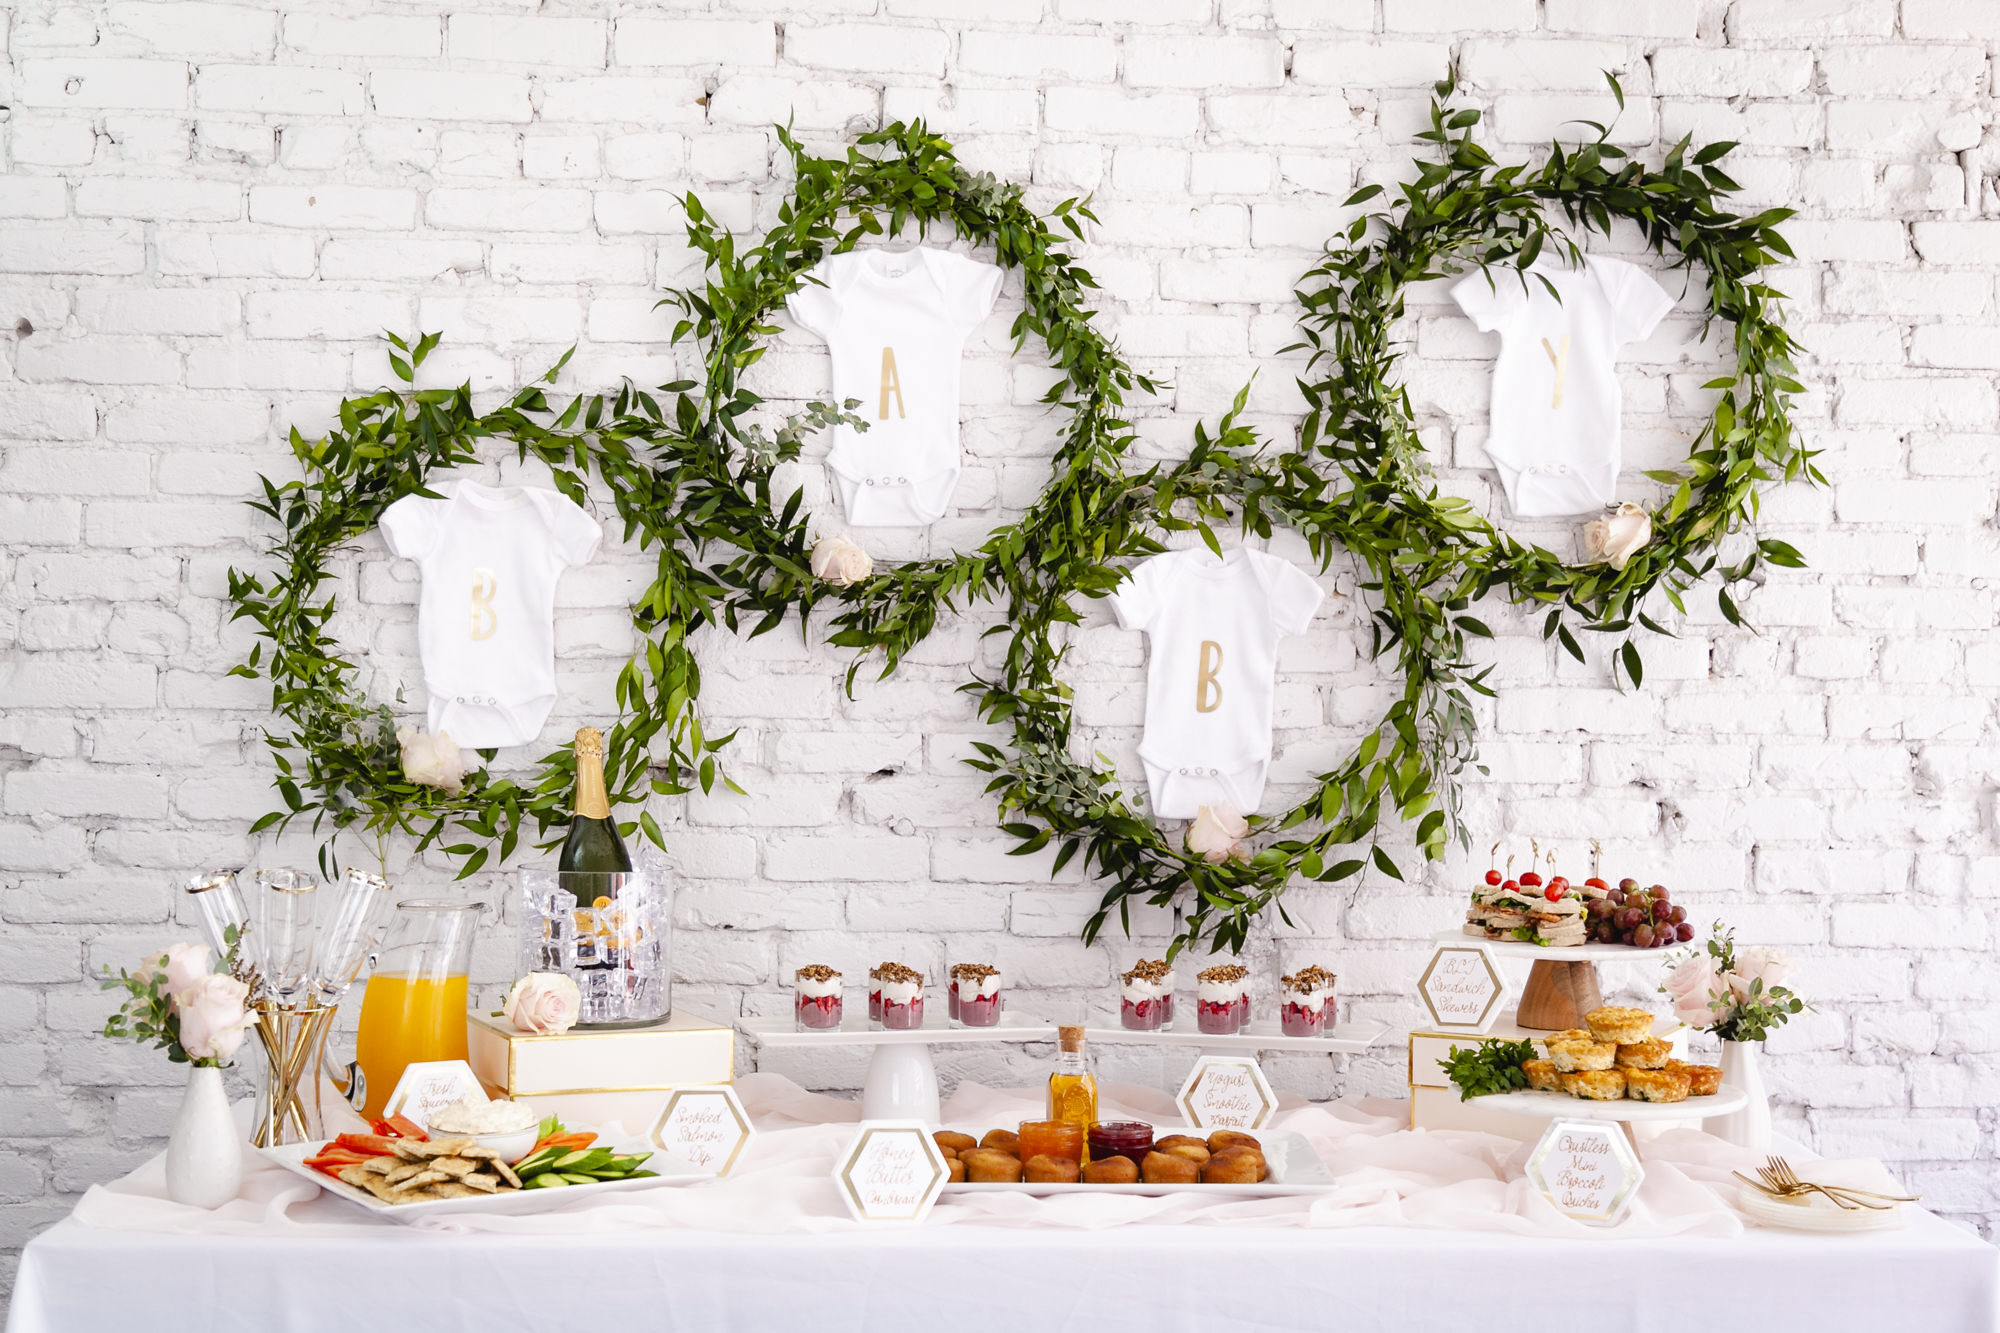 "Elegant Baby Shower Sip and See ideas. The food table backdrop was created with greenery wreaths and baby onesies hanging inside with the letters for ""BABY"" on them in gold. Styling by Mint Event Design in Austin Texas for Bento Picnic www.minteventdesign.com"